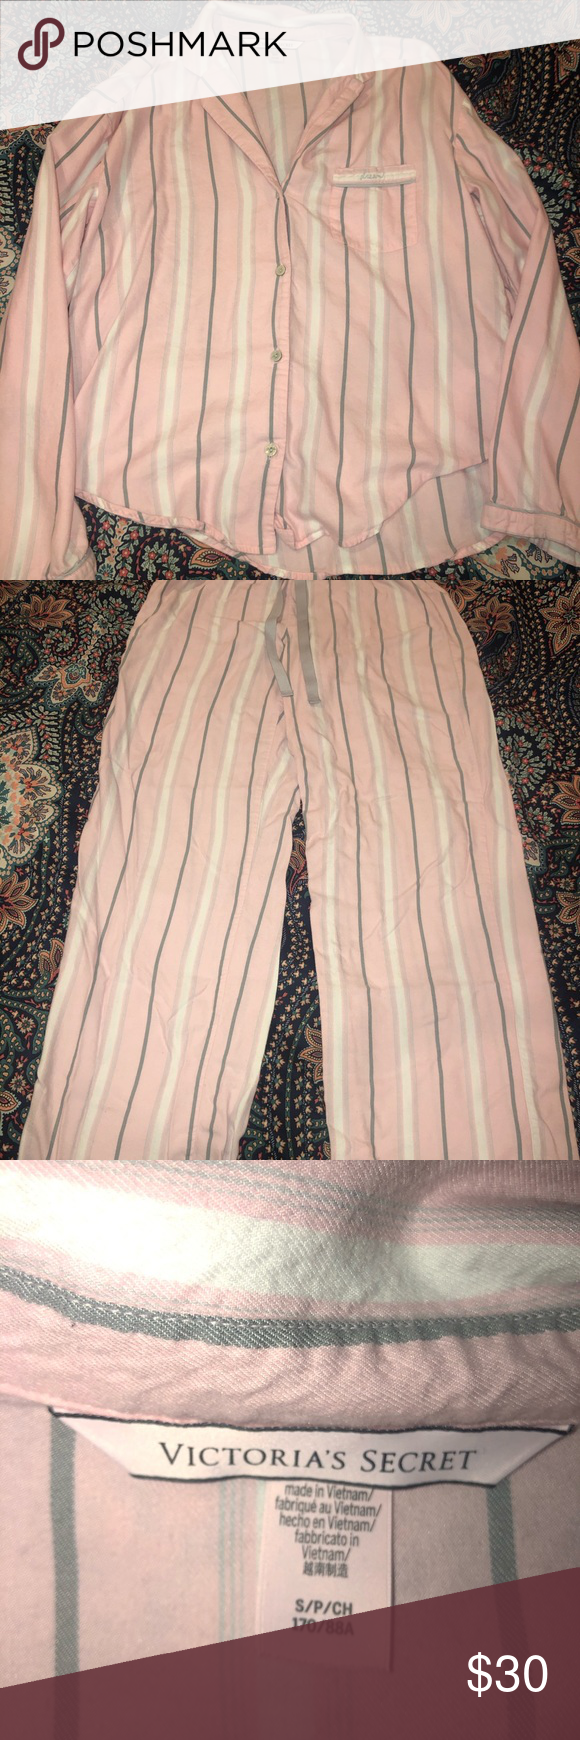 VS pajama set Excellent condition Victoria's Secret Intimates & Sleepwear Pajamas #myposhpicks